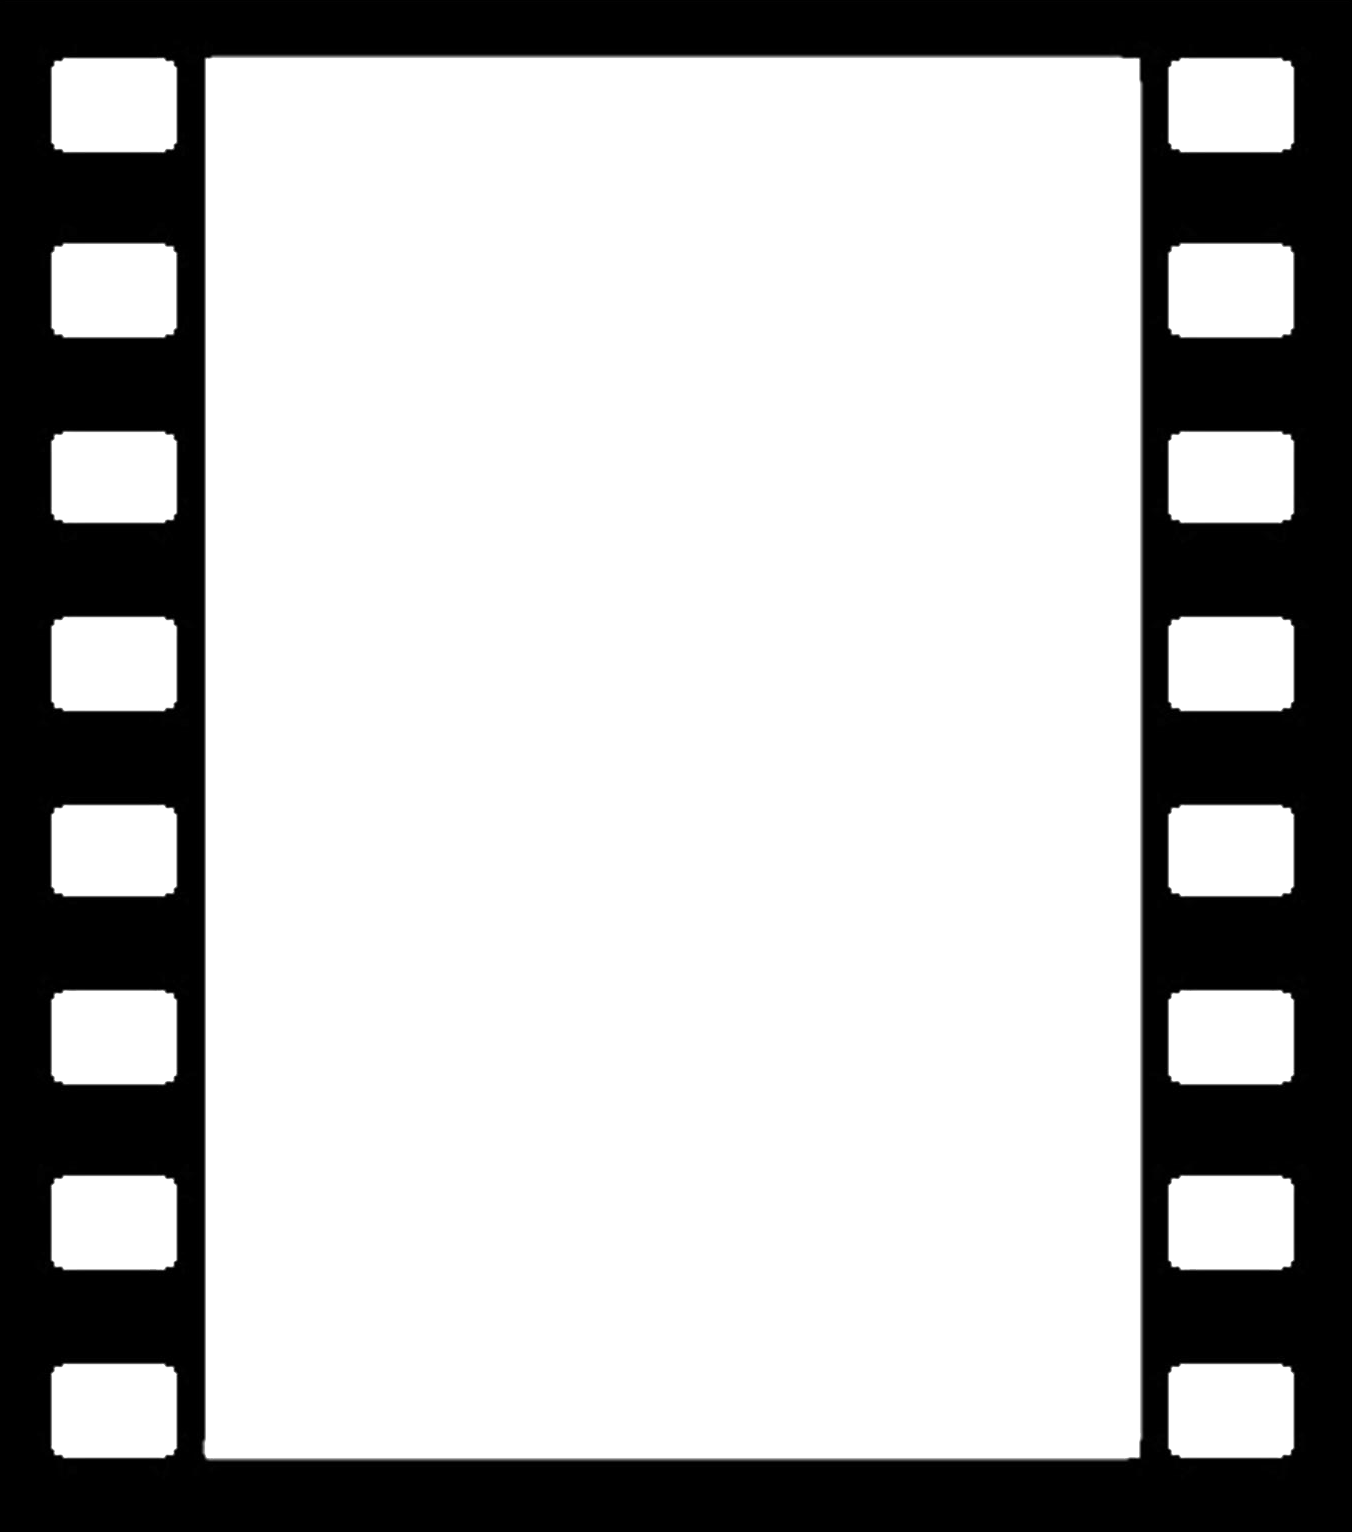 Film strip clip art download.